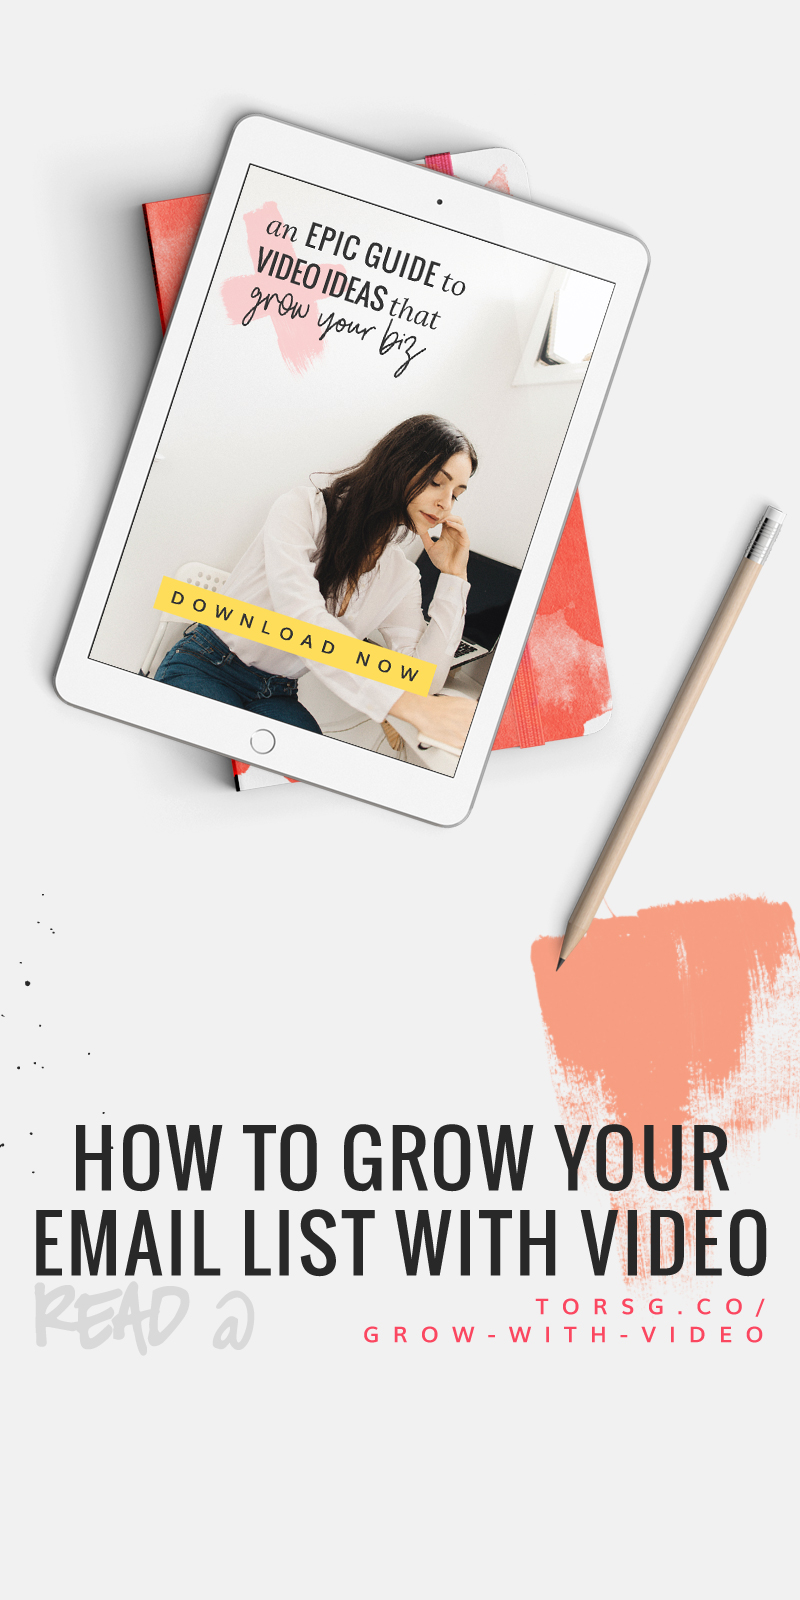 PINTEREST-How-To-Grow-Your-Email-List-With-Video.jpg